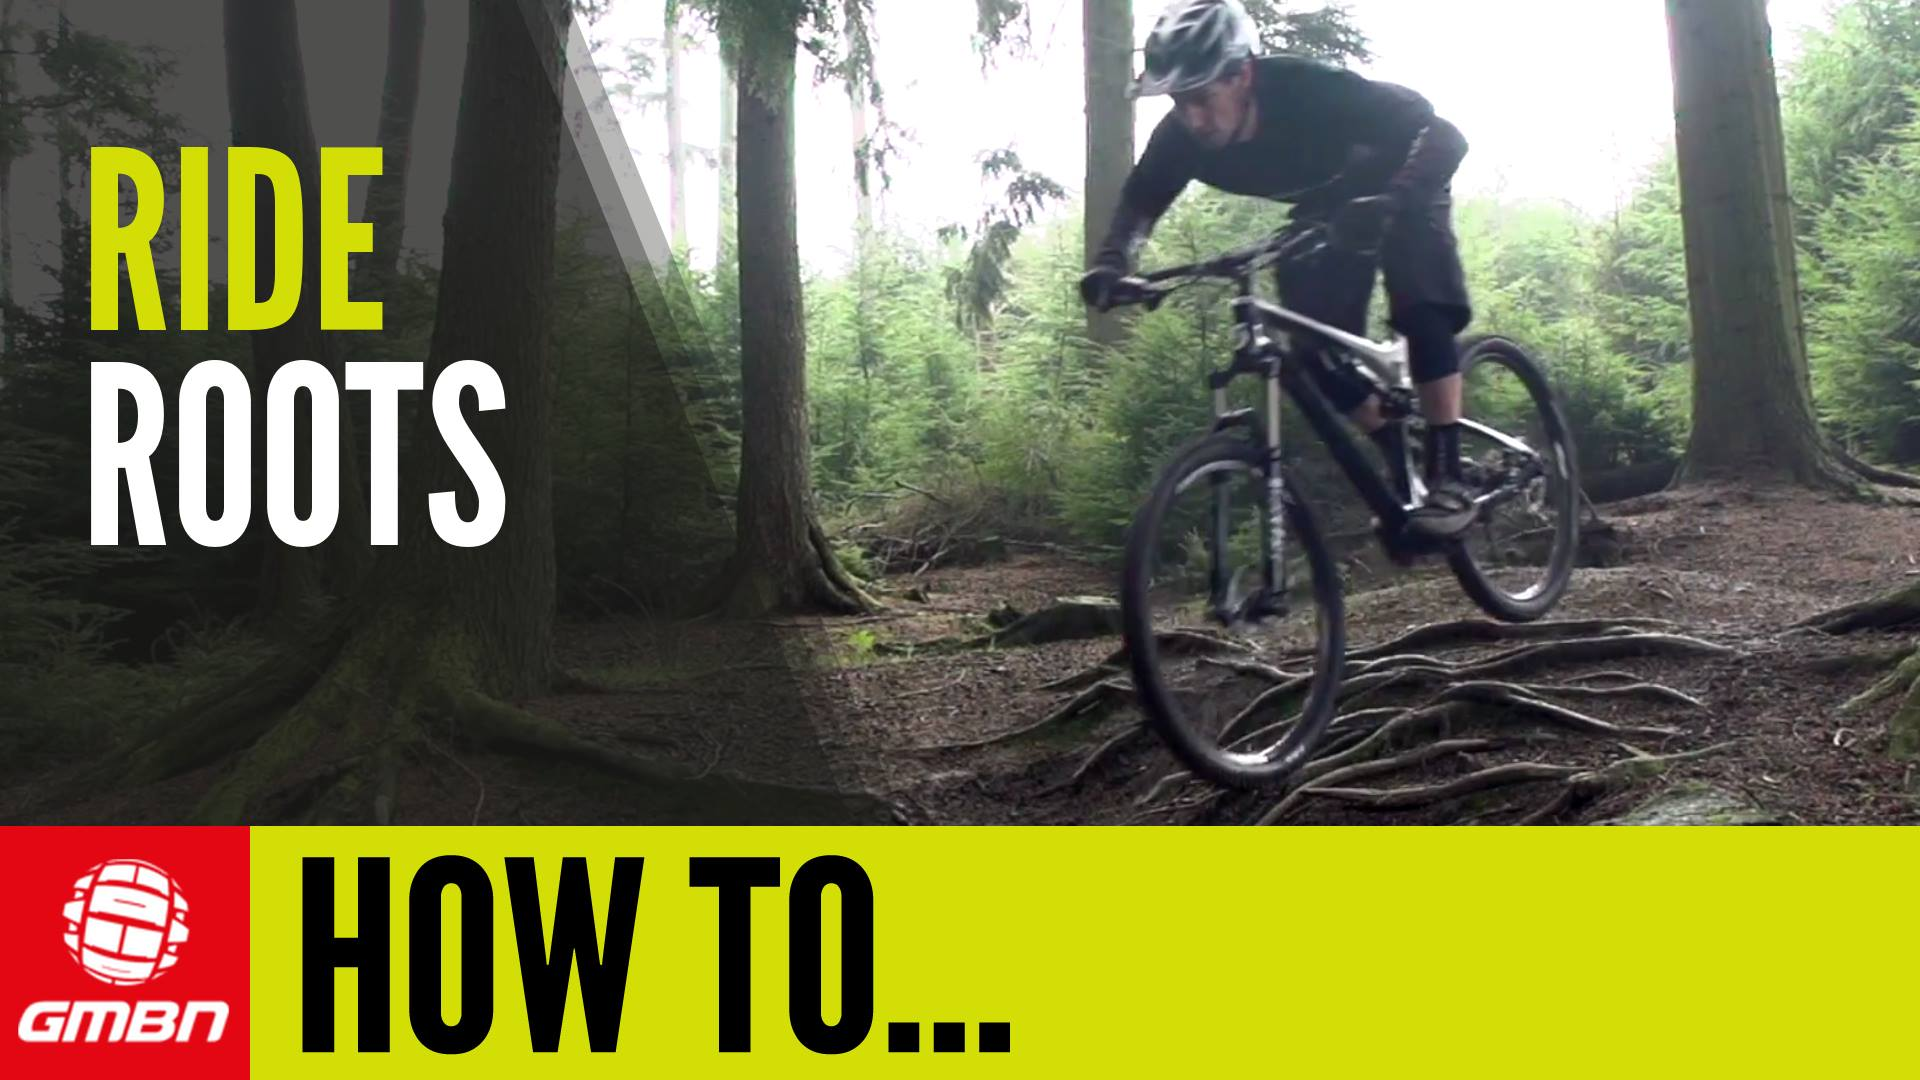 Video: How To Ride Roots On Your Mountain Bike - Singletracks Mountain Bike News